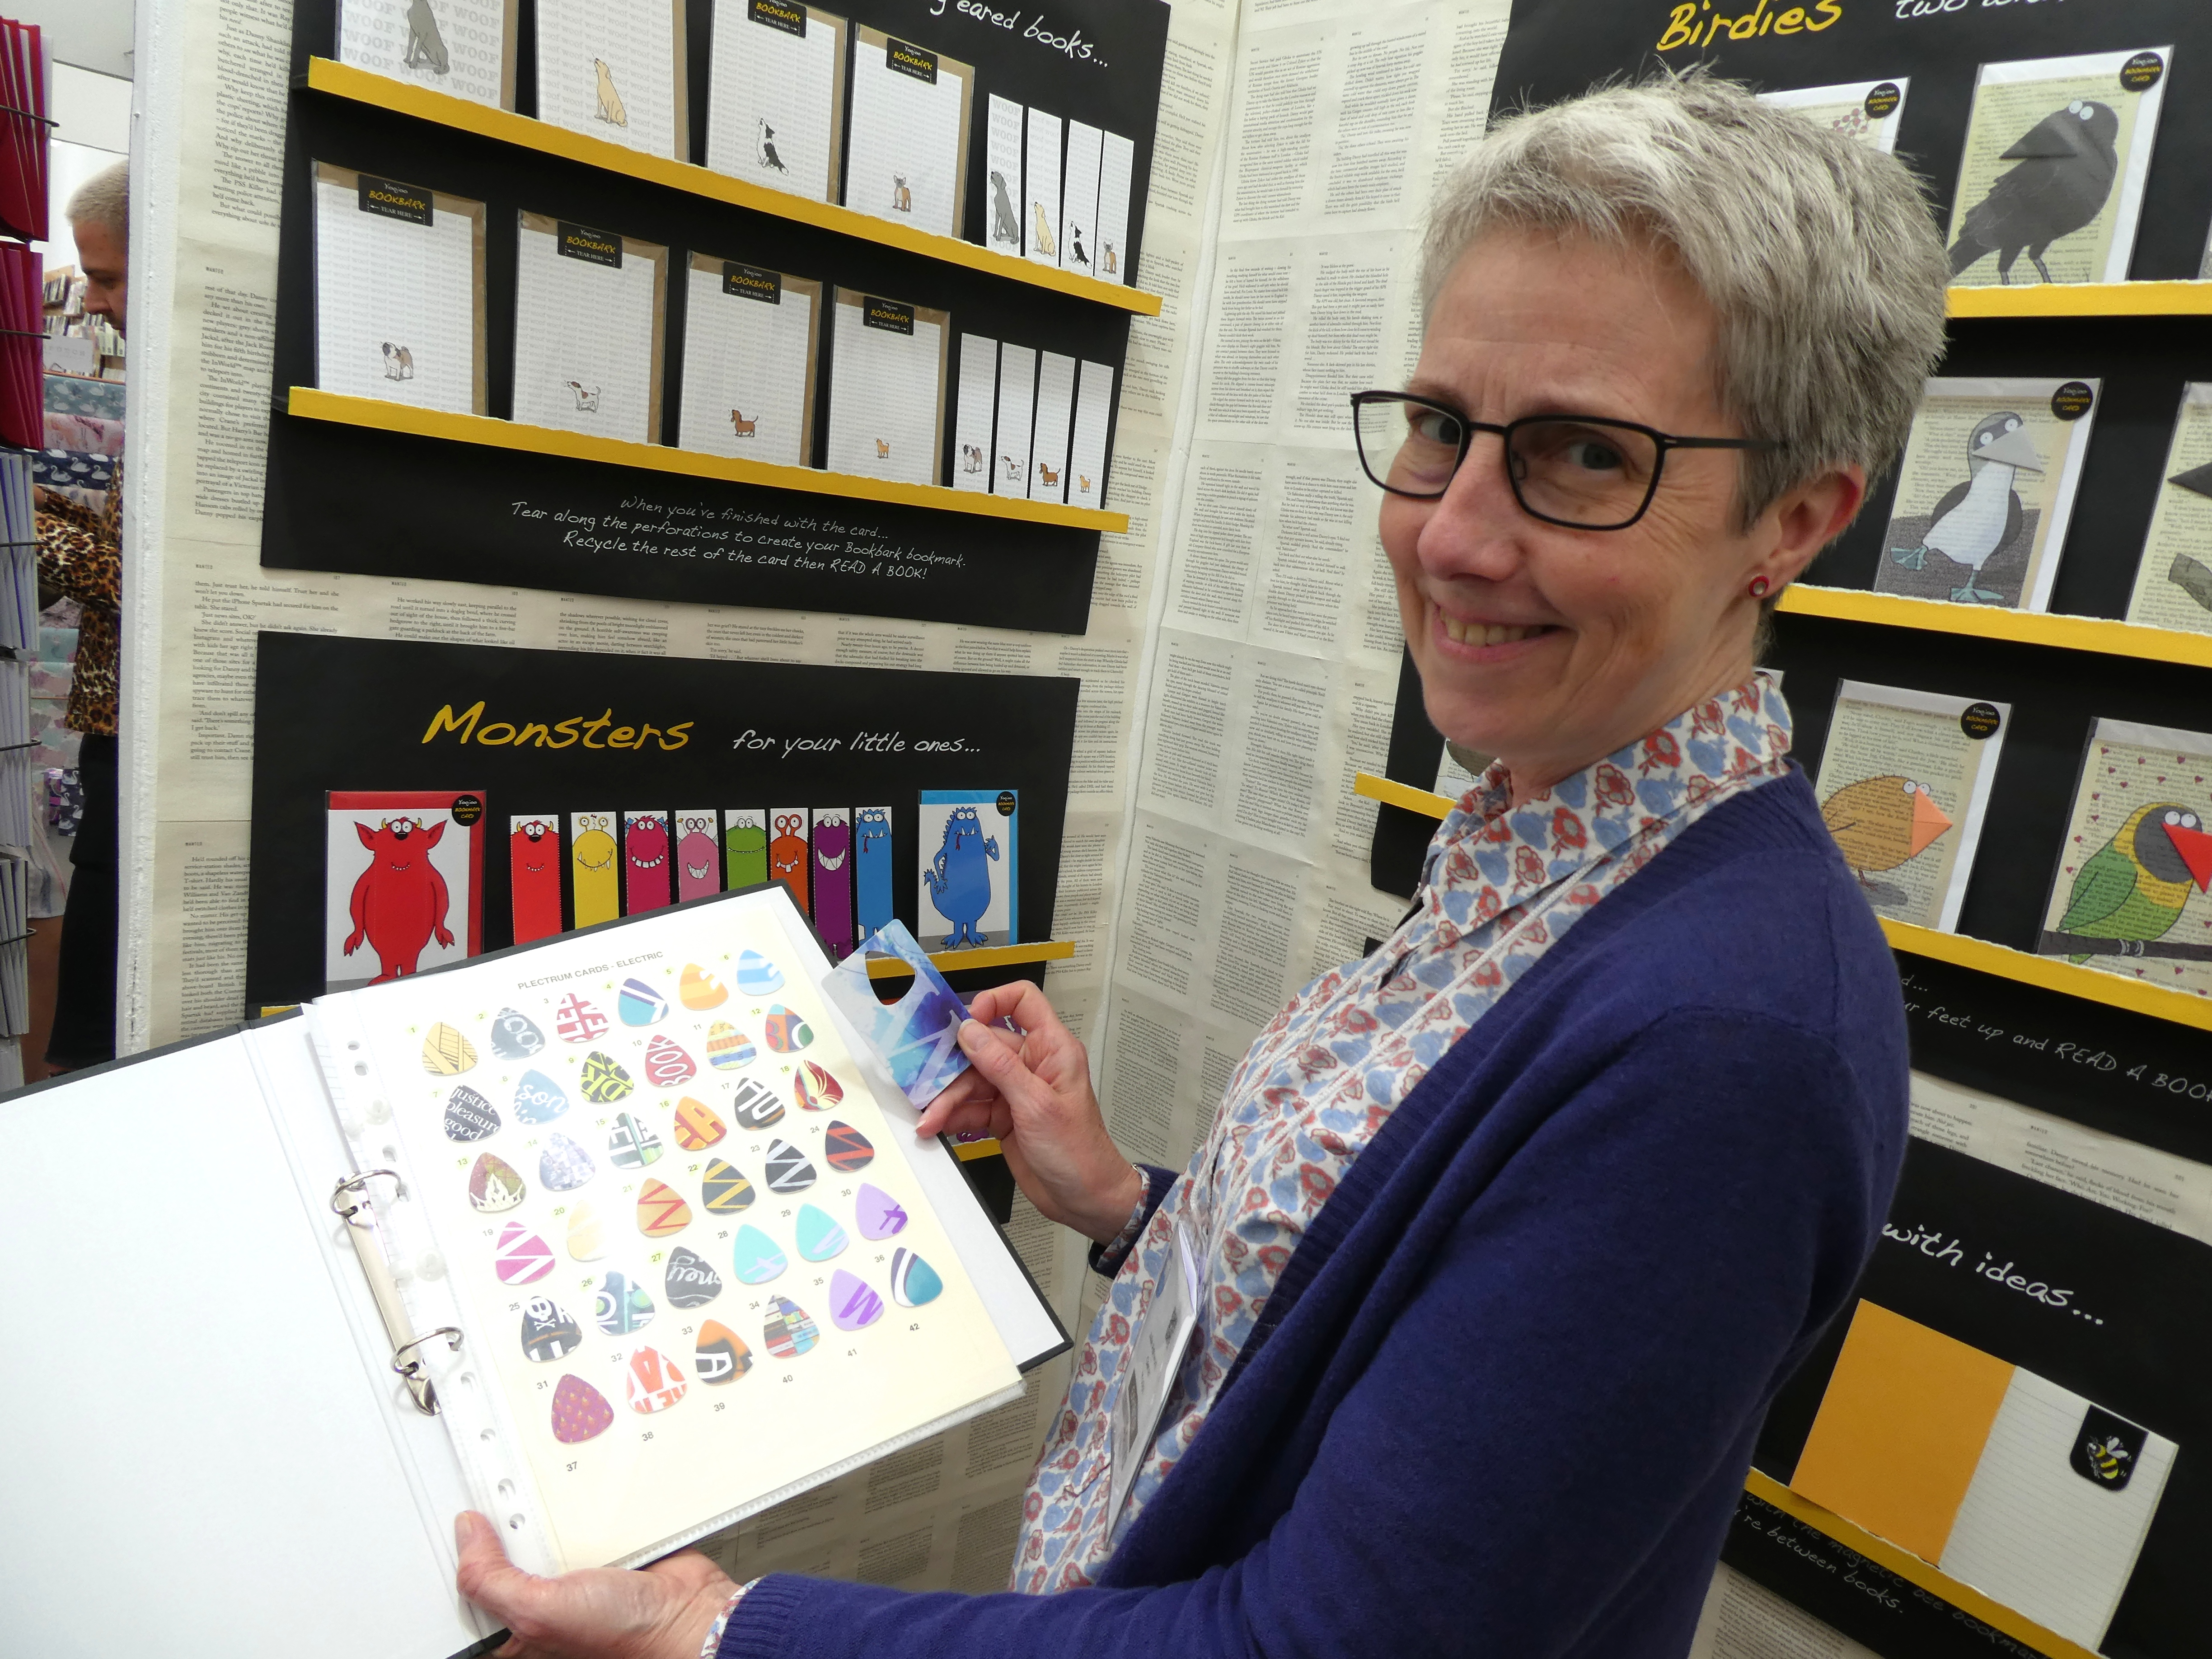 Above: Julie Ashworth on her stand at the recent Harrogate Home and Gift showing the array of plectrums that she has been able to cut from spent plastic gift cards.